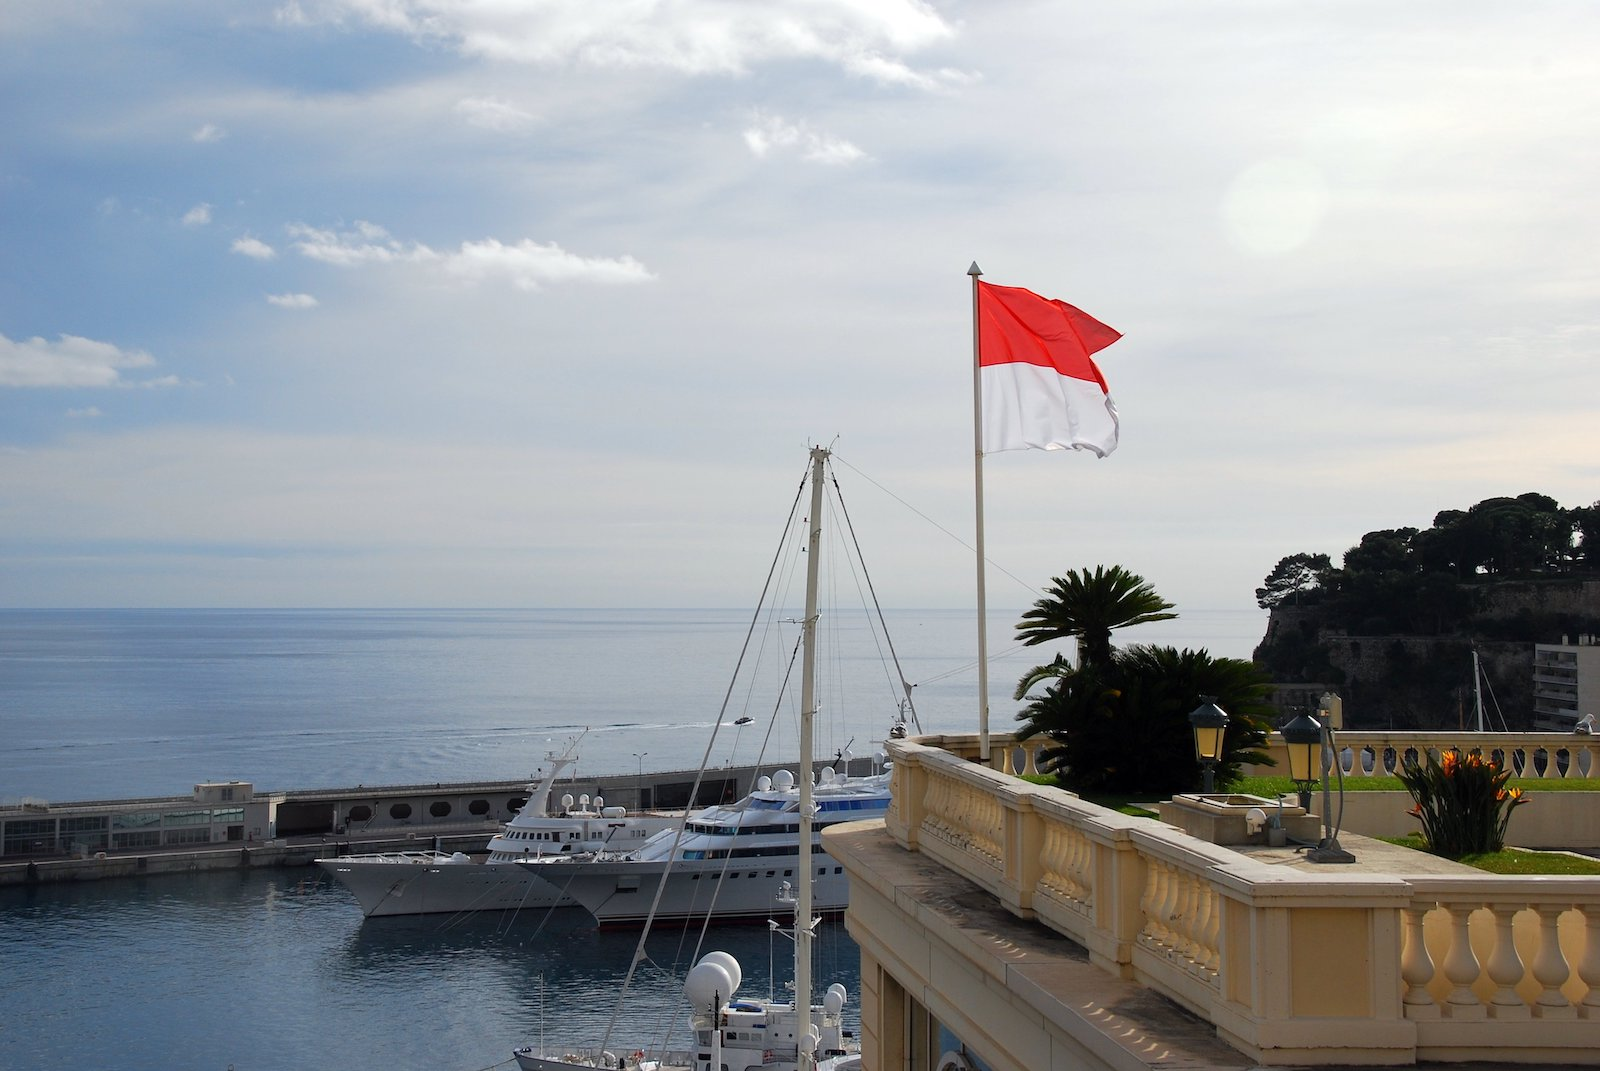 Monaco harbour and flag